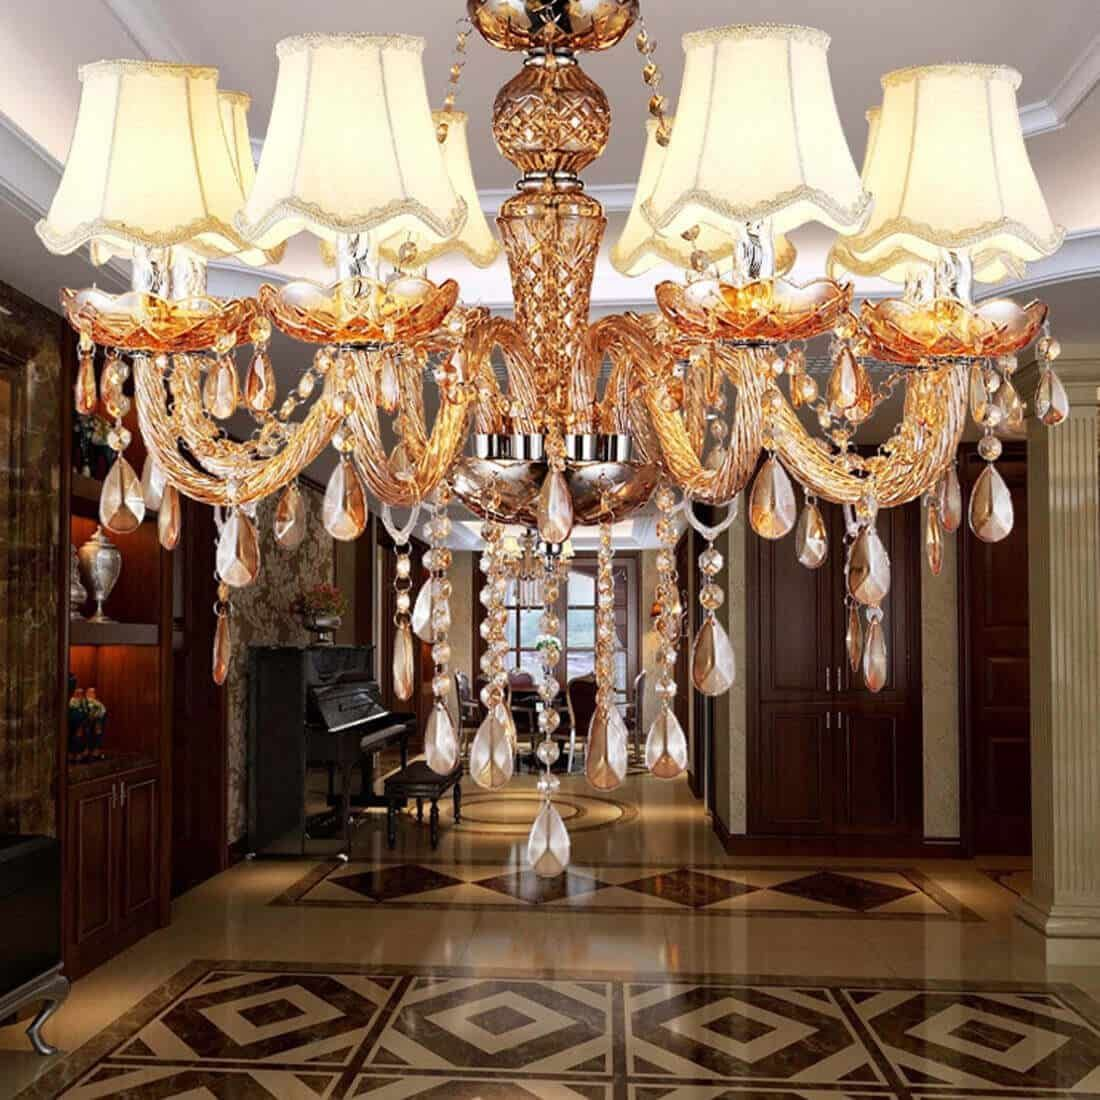 luxury-candle-chandelier-bedroom-pendant-light